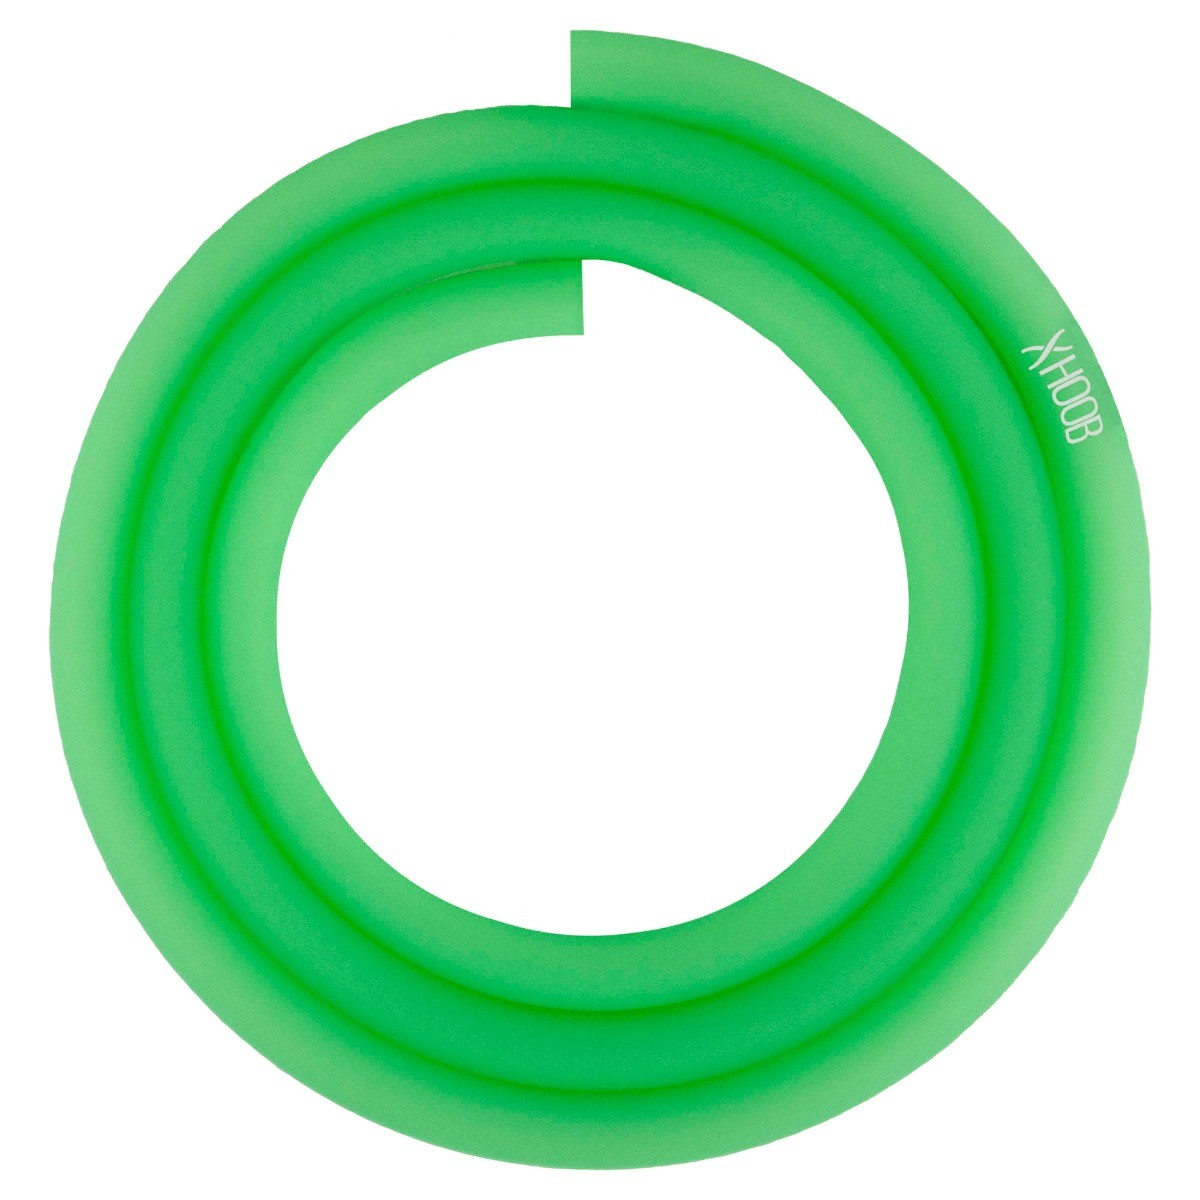 Silicone Hookah Hose   Glowing Green Soft-Touch